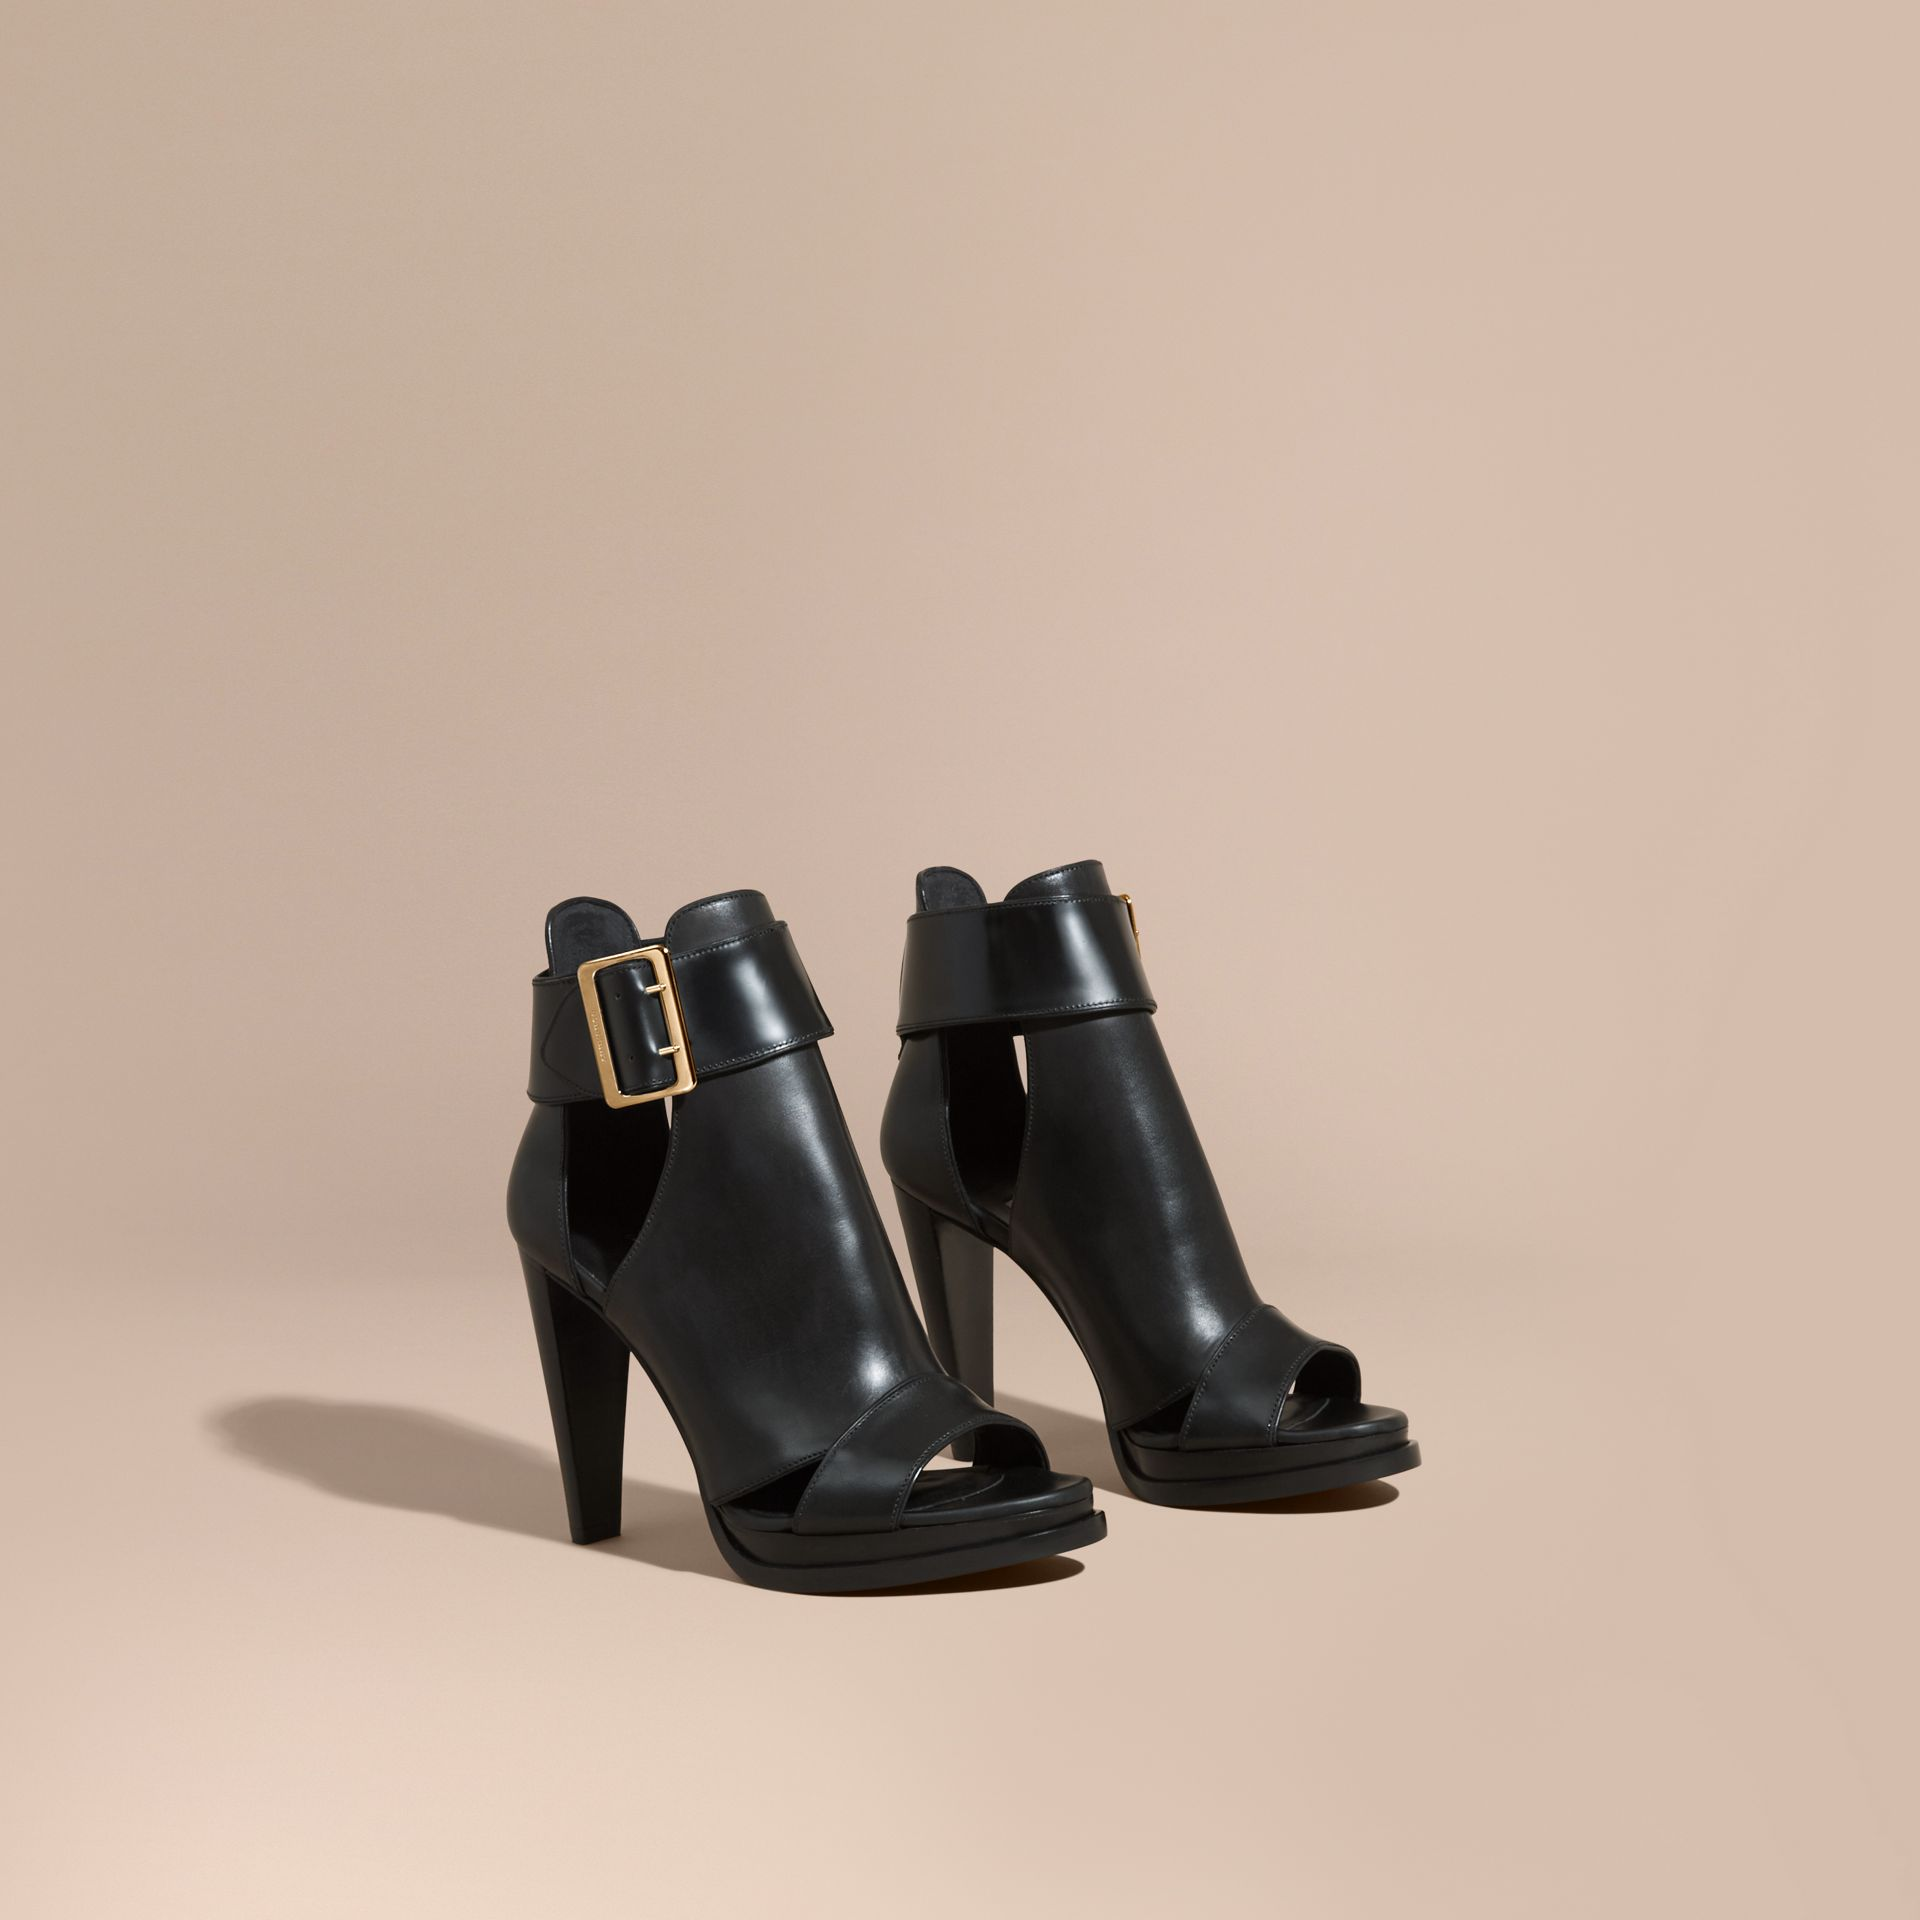 Buckle Detail Peep-toe Platform Ankle Boots - gallery image 1